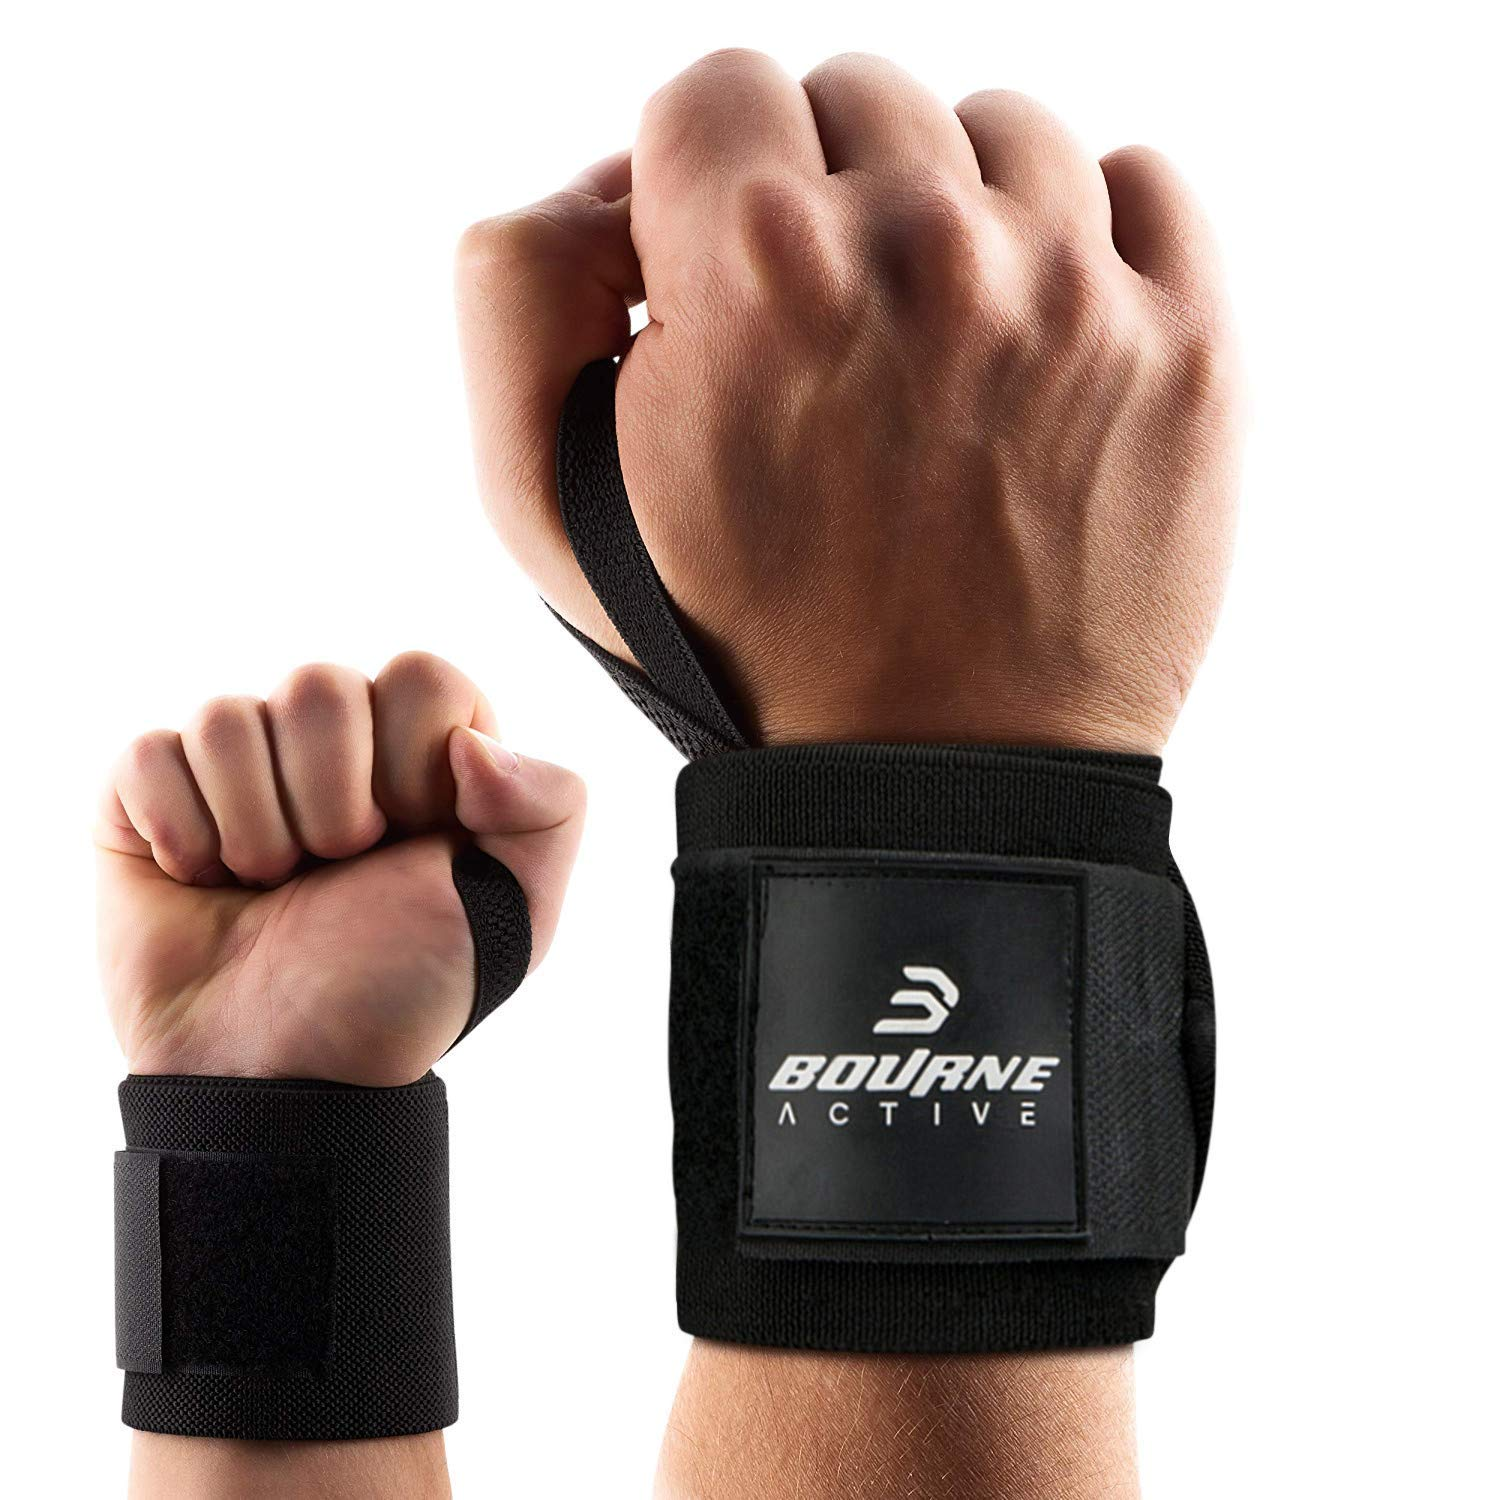 d25a0cbbcd Get Quotations · Bourne Active Wrist Wraps Weightlifting, Powerlifting,  Cross Training, Bodybuilding with Thumb Loop.